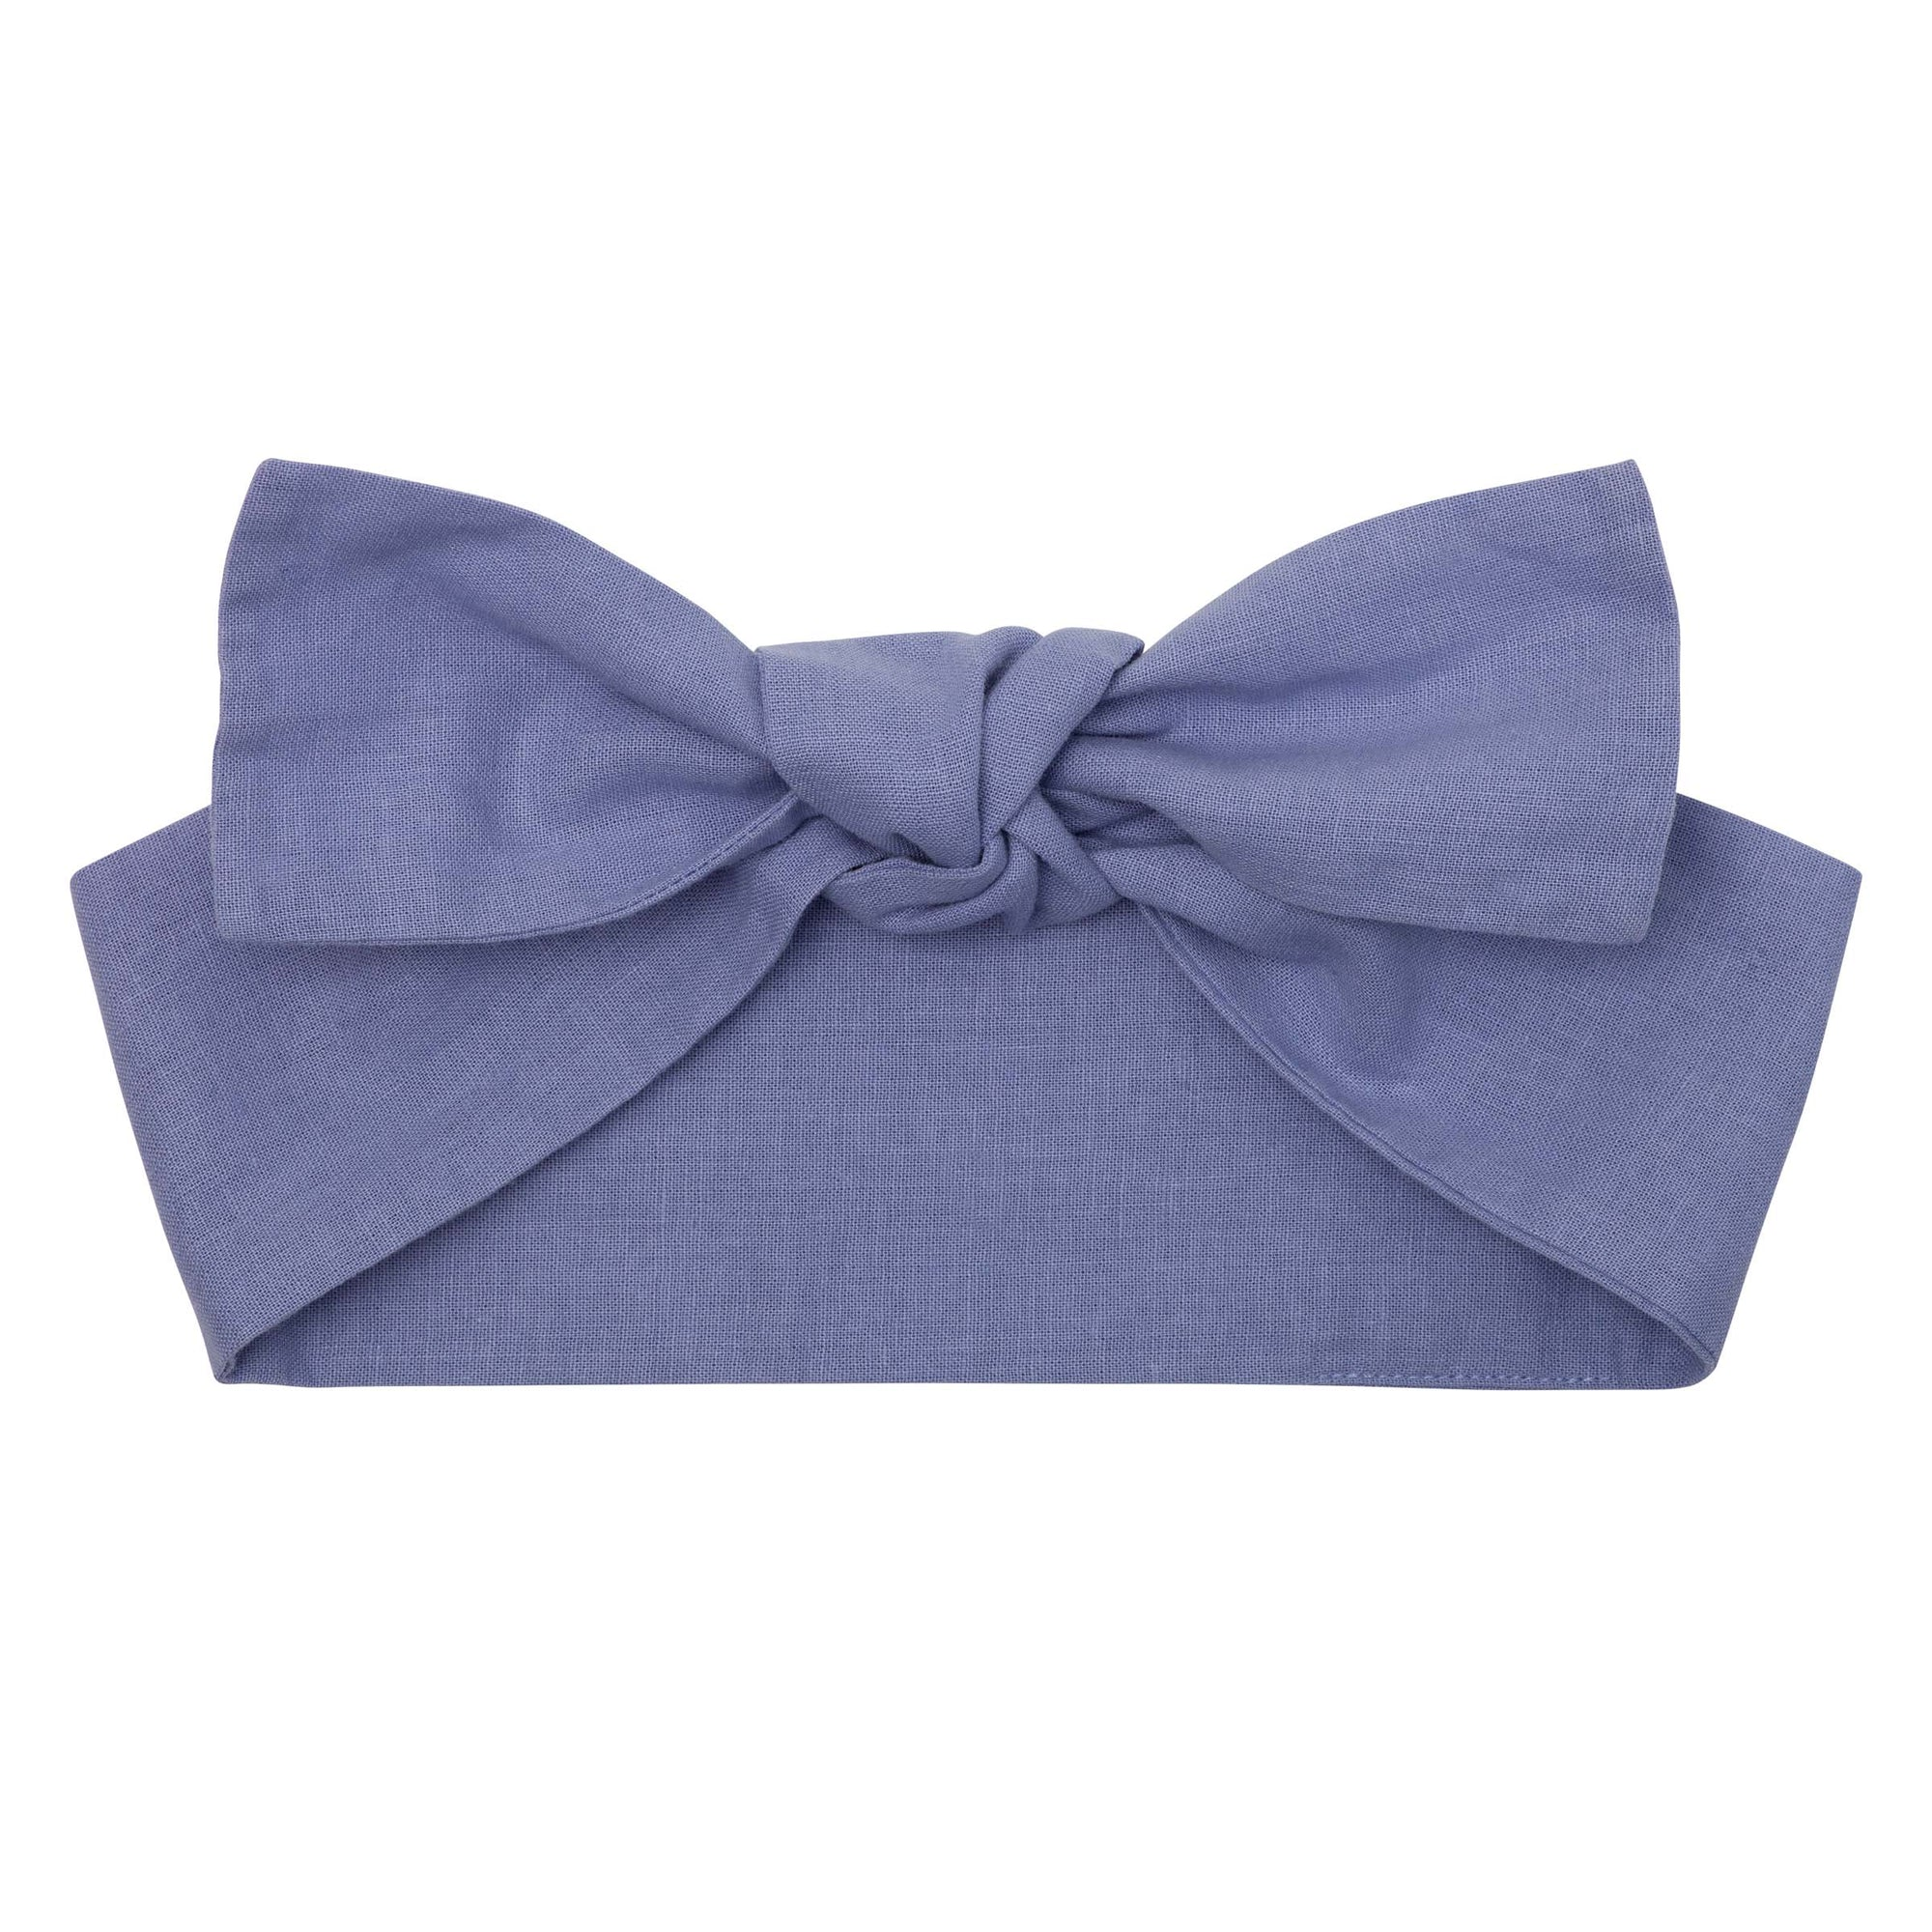 Buy Linen Headband - Pacific Blue - Designer Kidz | Special Occasions, Party Wear & Weddings  | Sizes 000-16 | Little Girls Party Dresses, Tutu Dresses, Flower Girl Dresses | Pay with Afterpay | Free AU Delivery Over $80